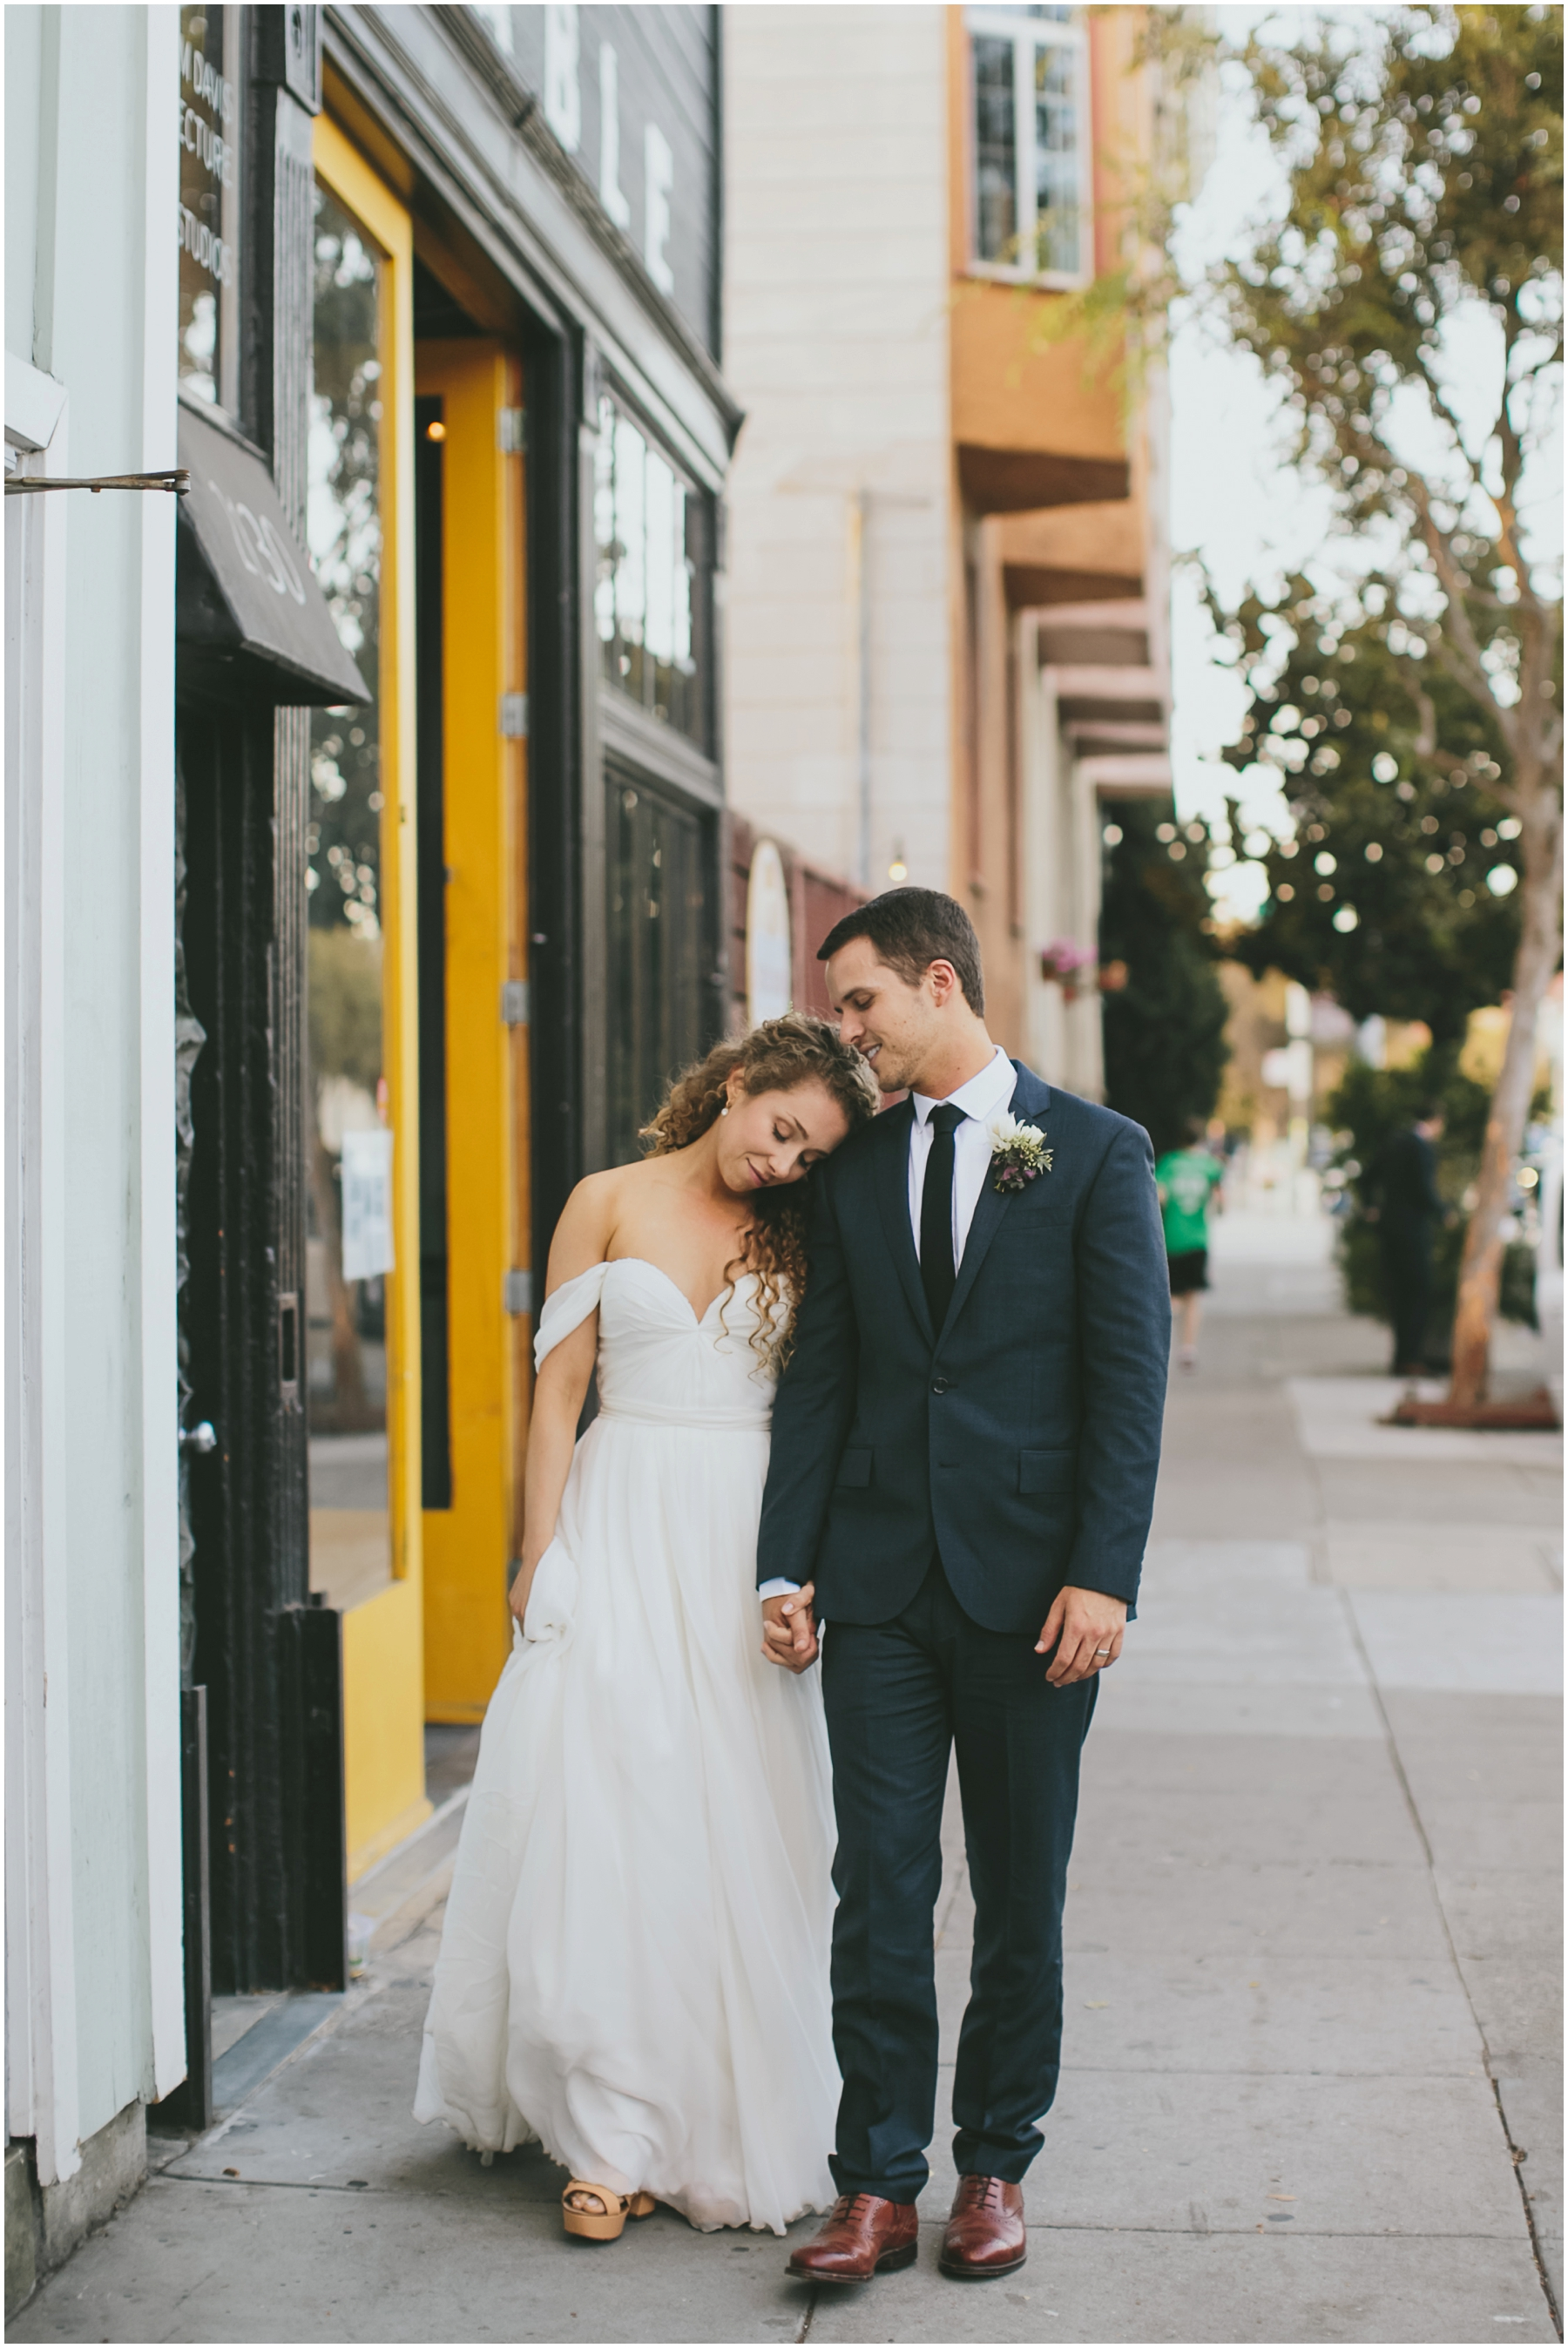 Emily+Paul-WEDDING_KellyBoitanoPhotography_0125